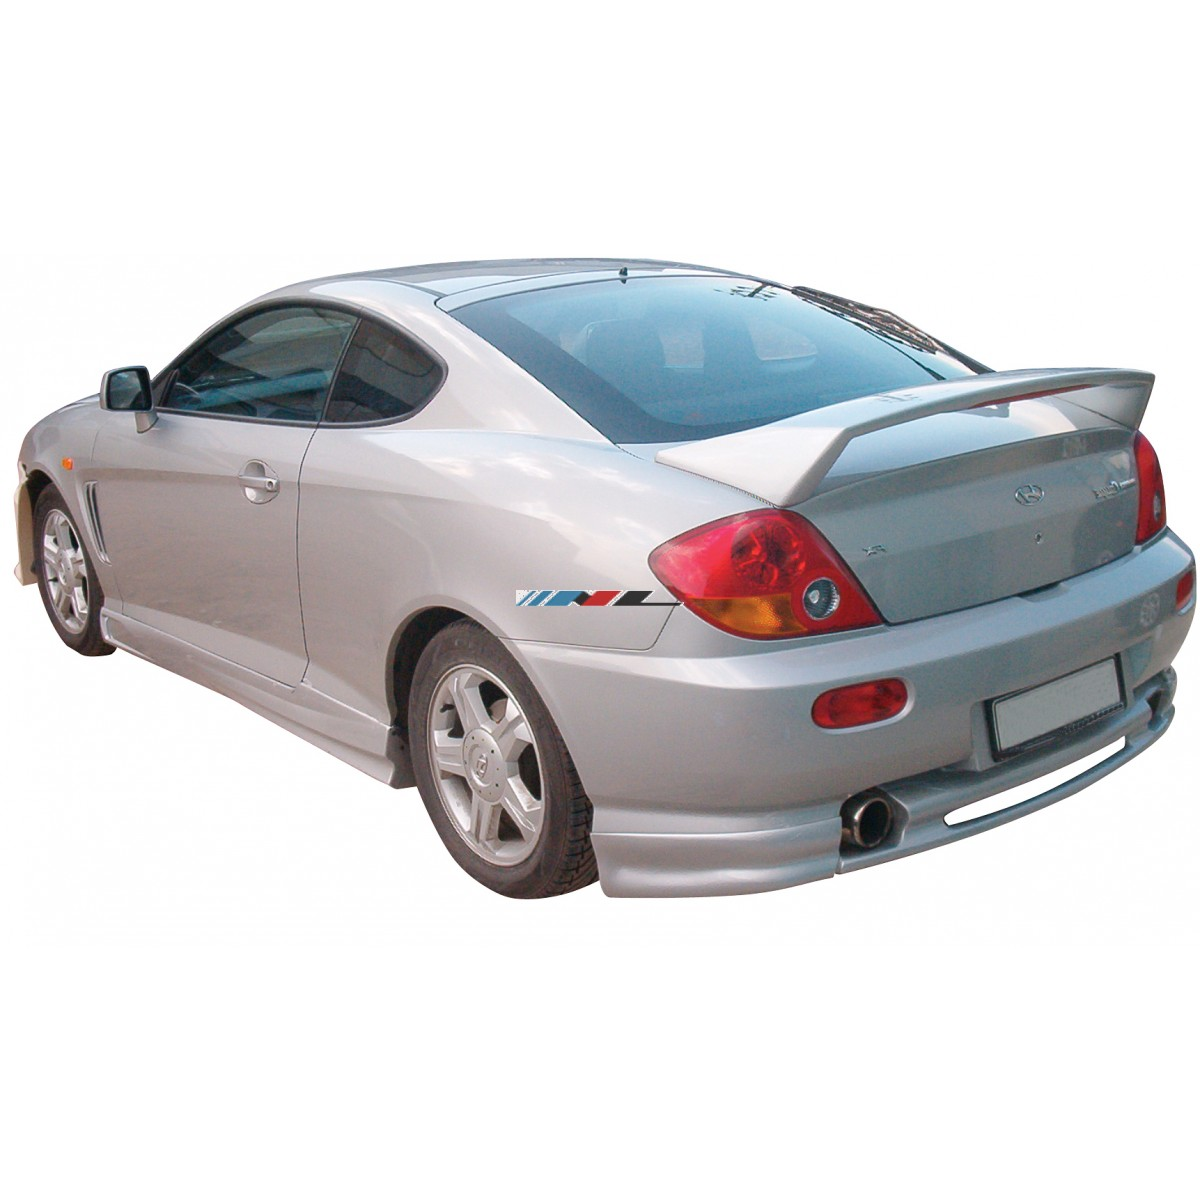 2001 hyundai coupe gk pictures information and specs. Black Bedroom Furniture Sets. Home Design Ideas